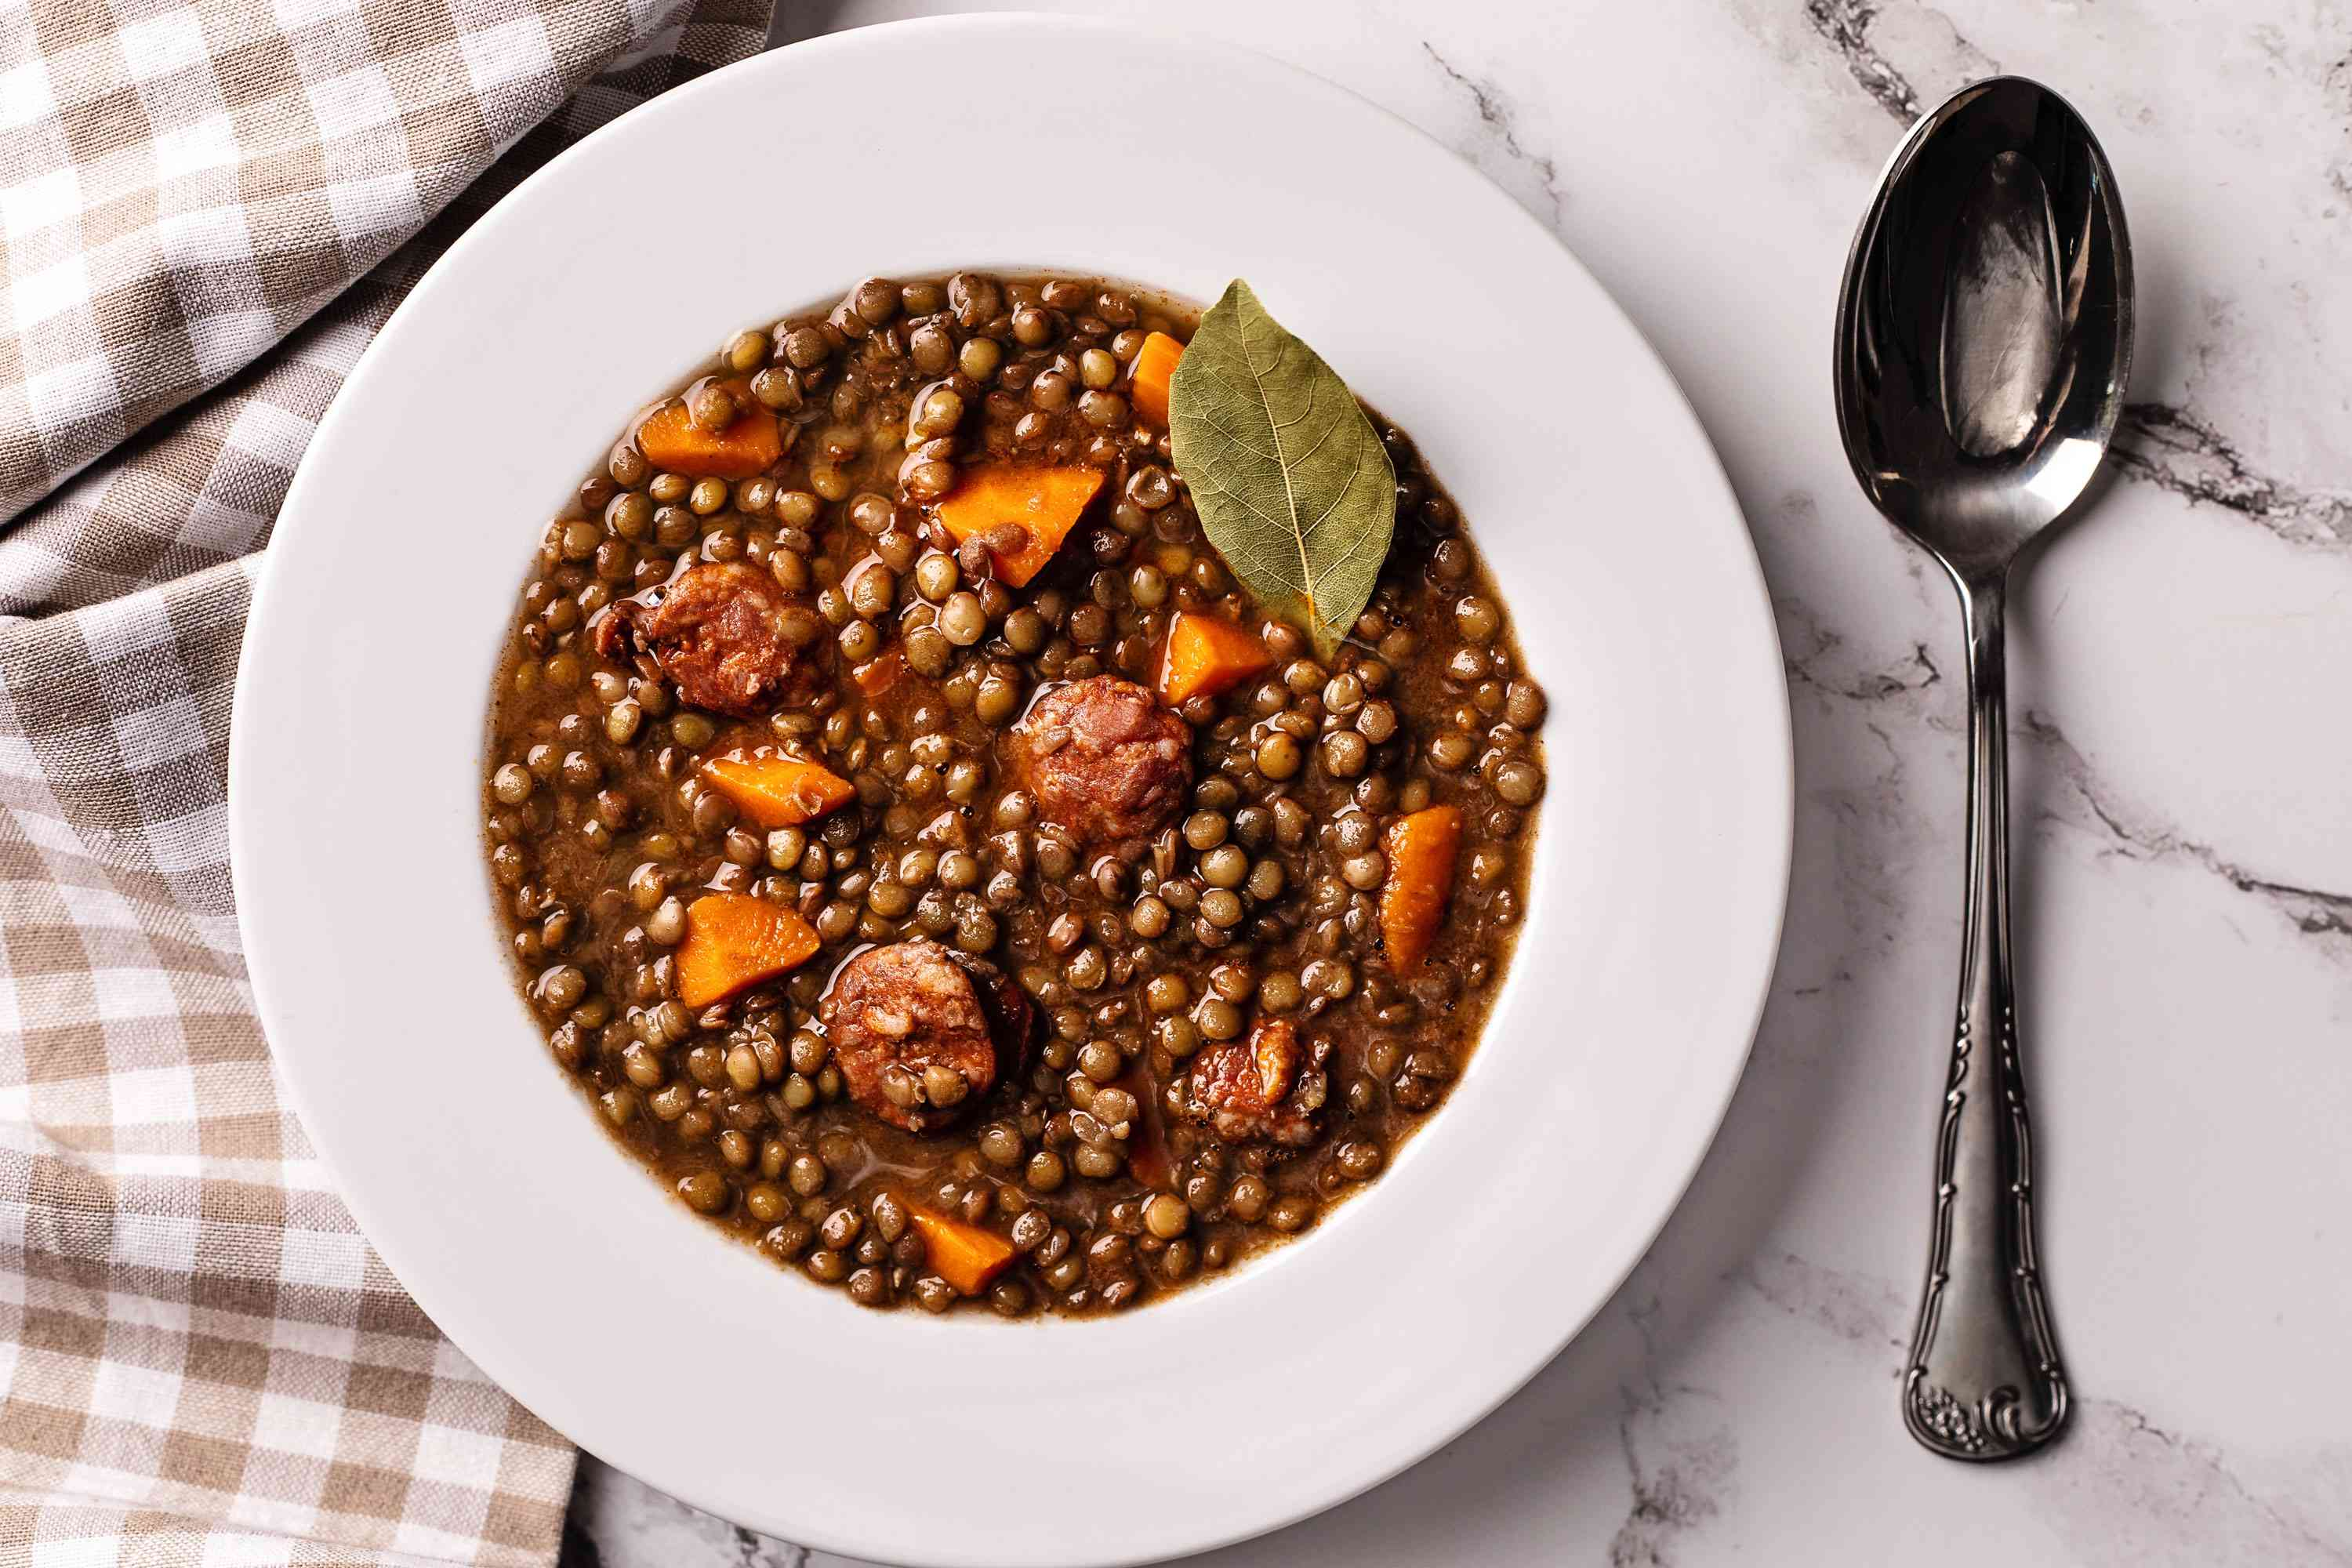 Herbed Lentils with Italian Sausage